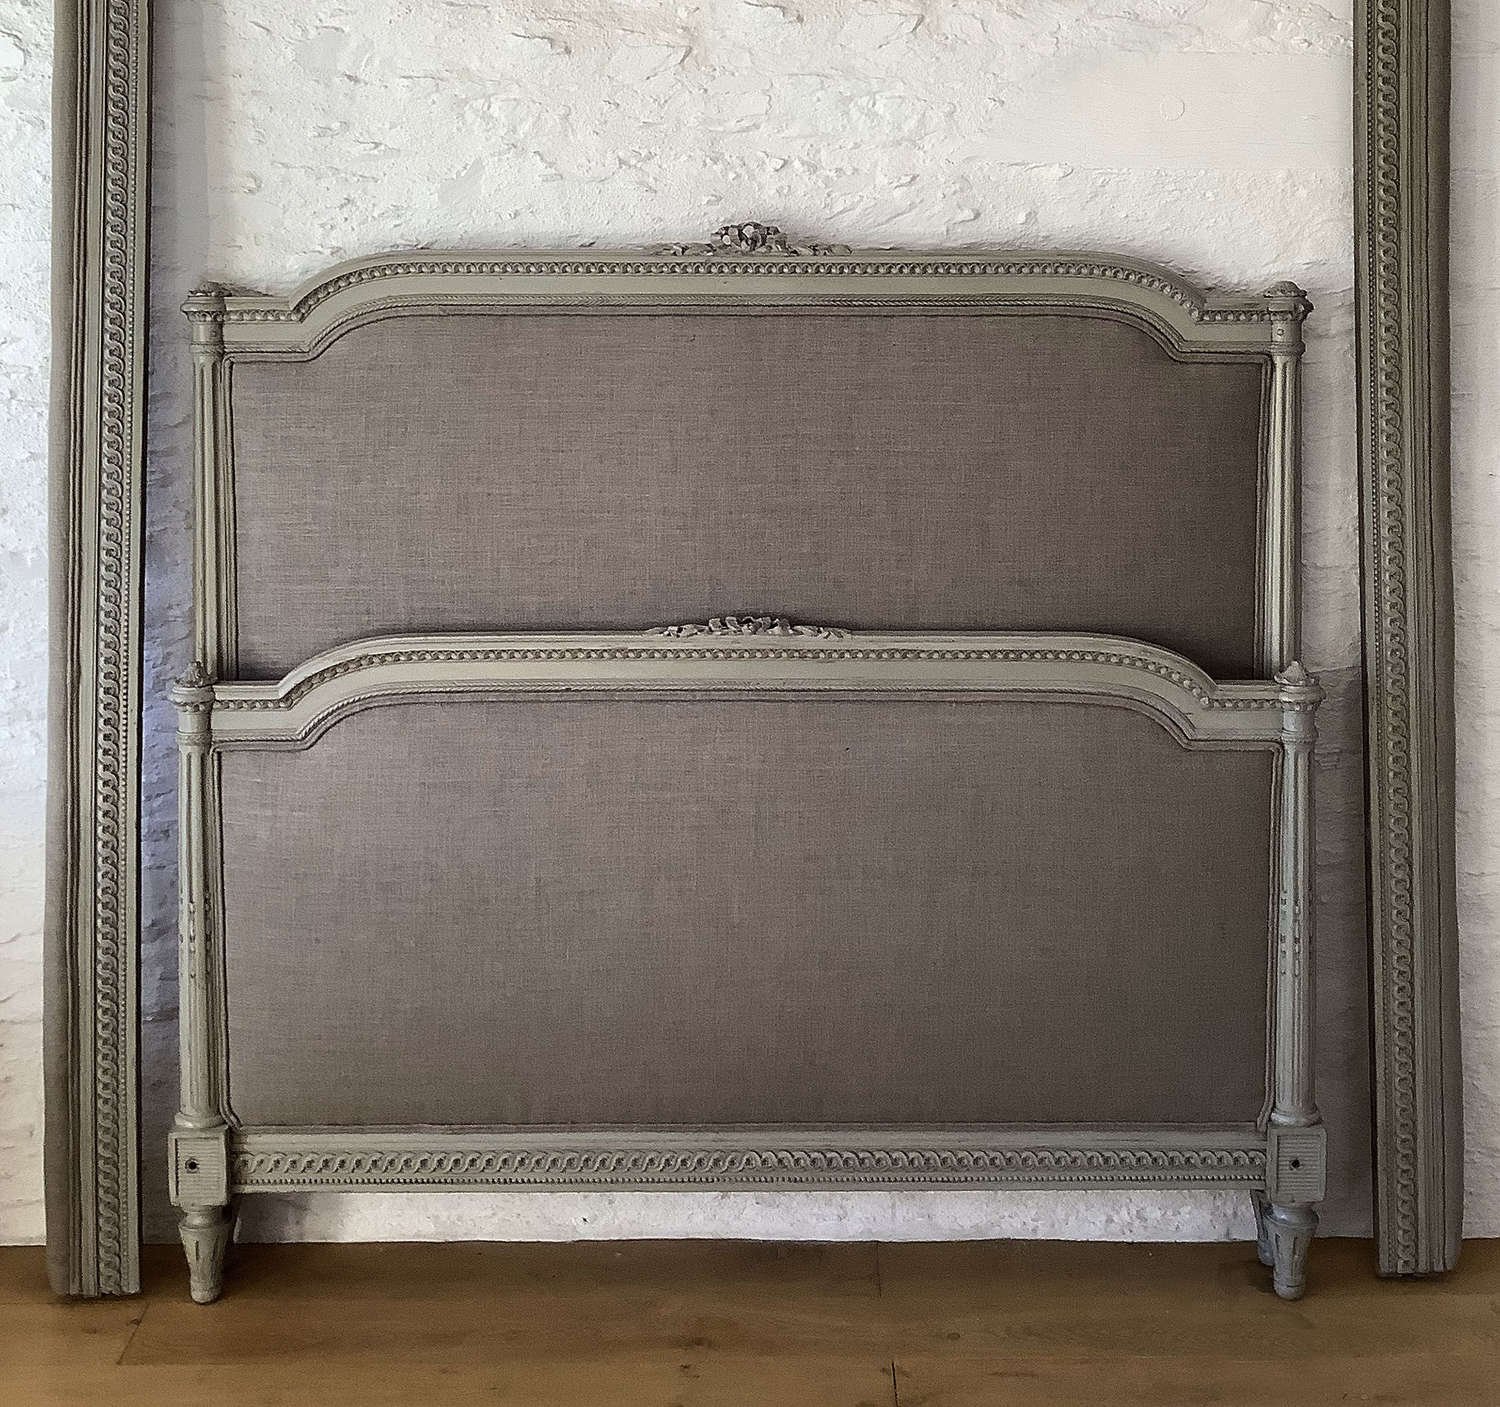 19th Century King size Louis XVI style bedstead